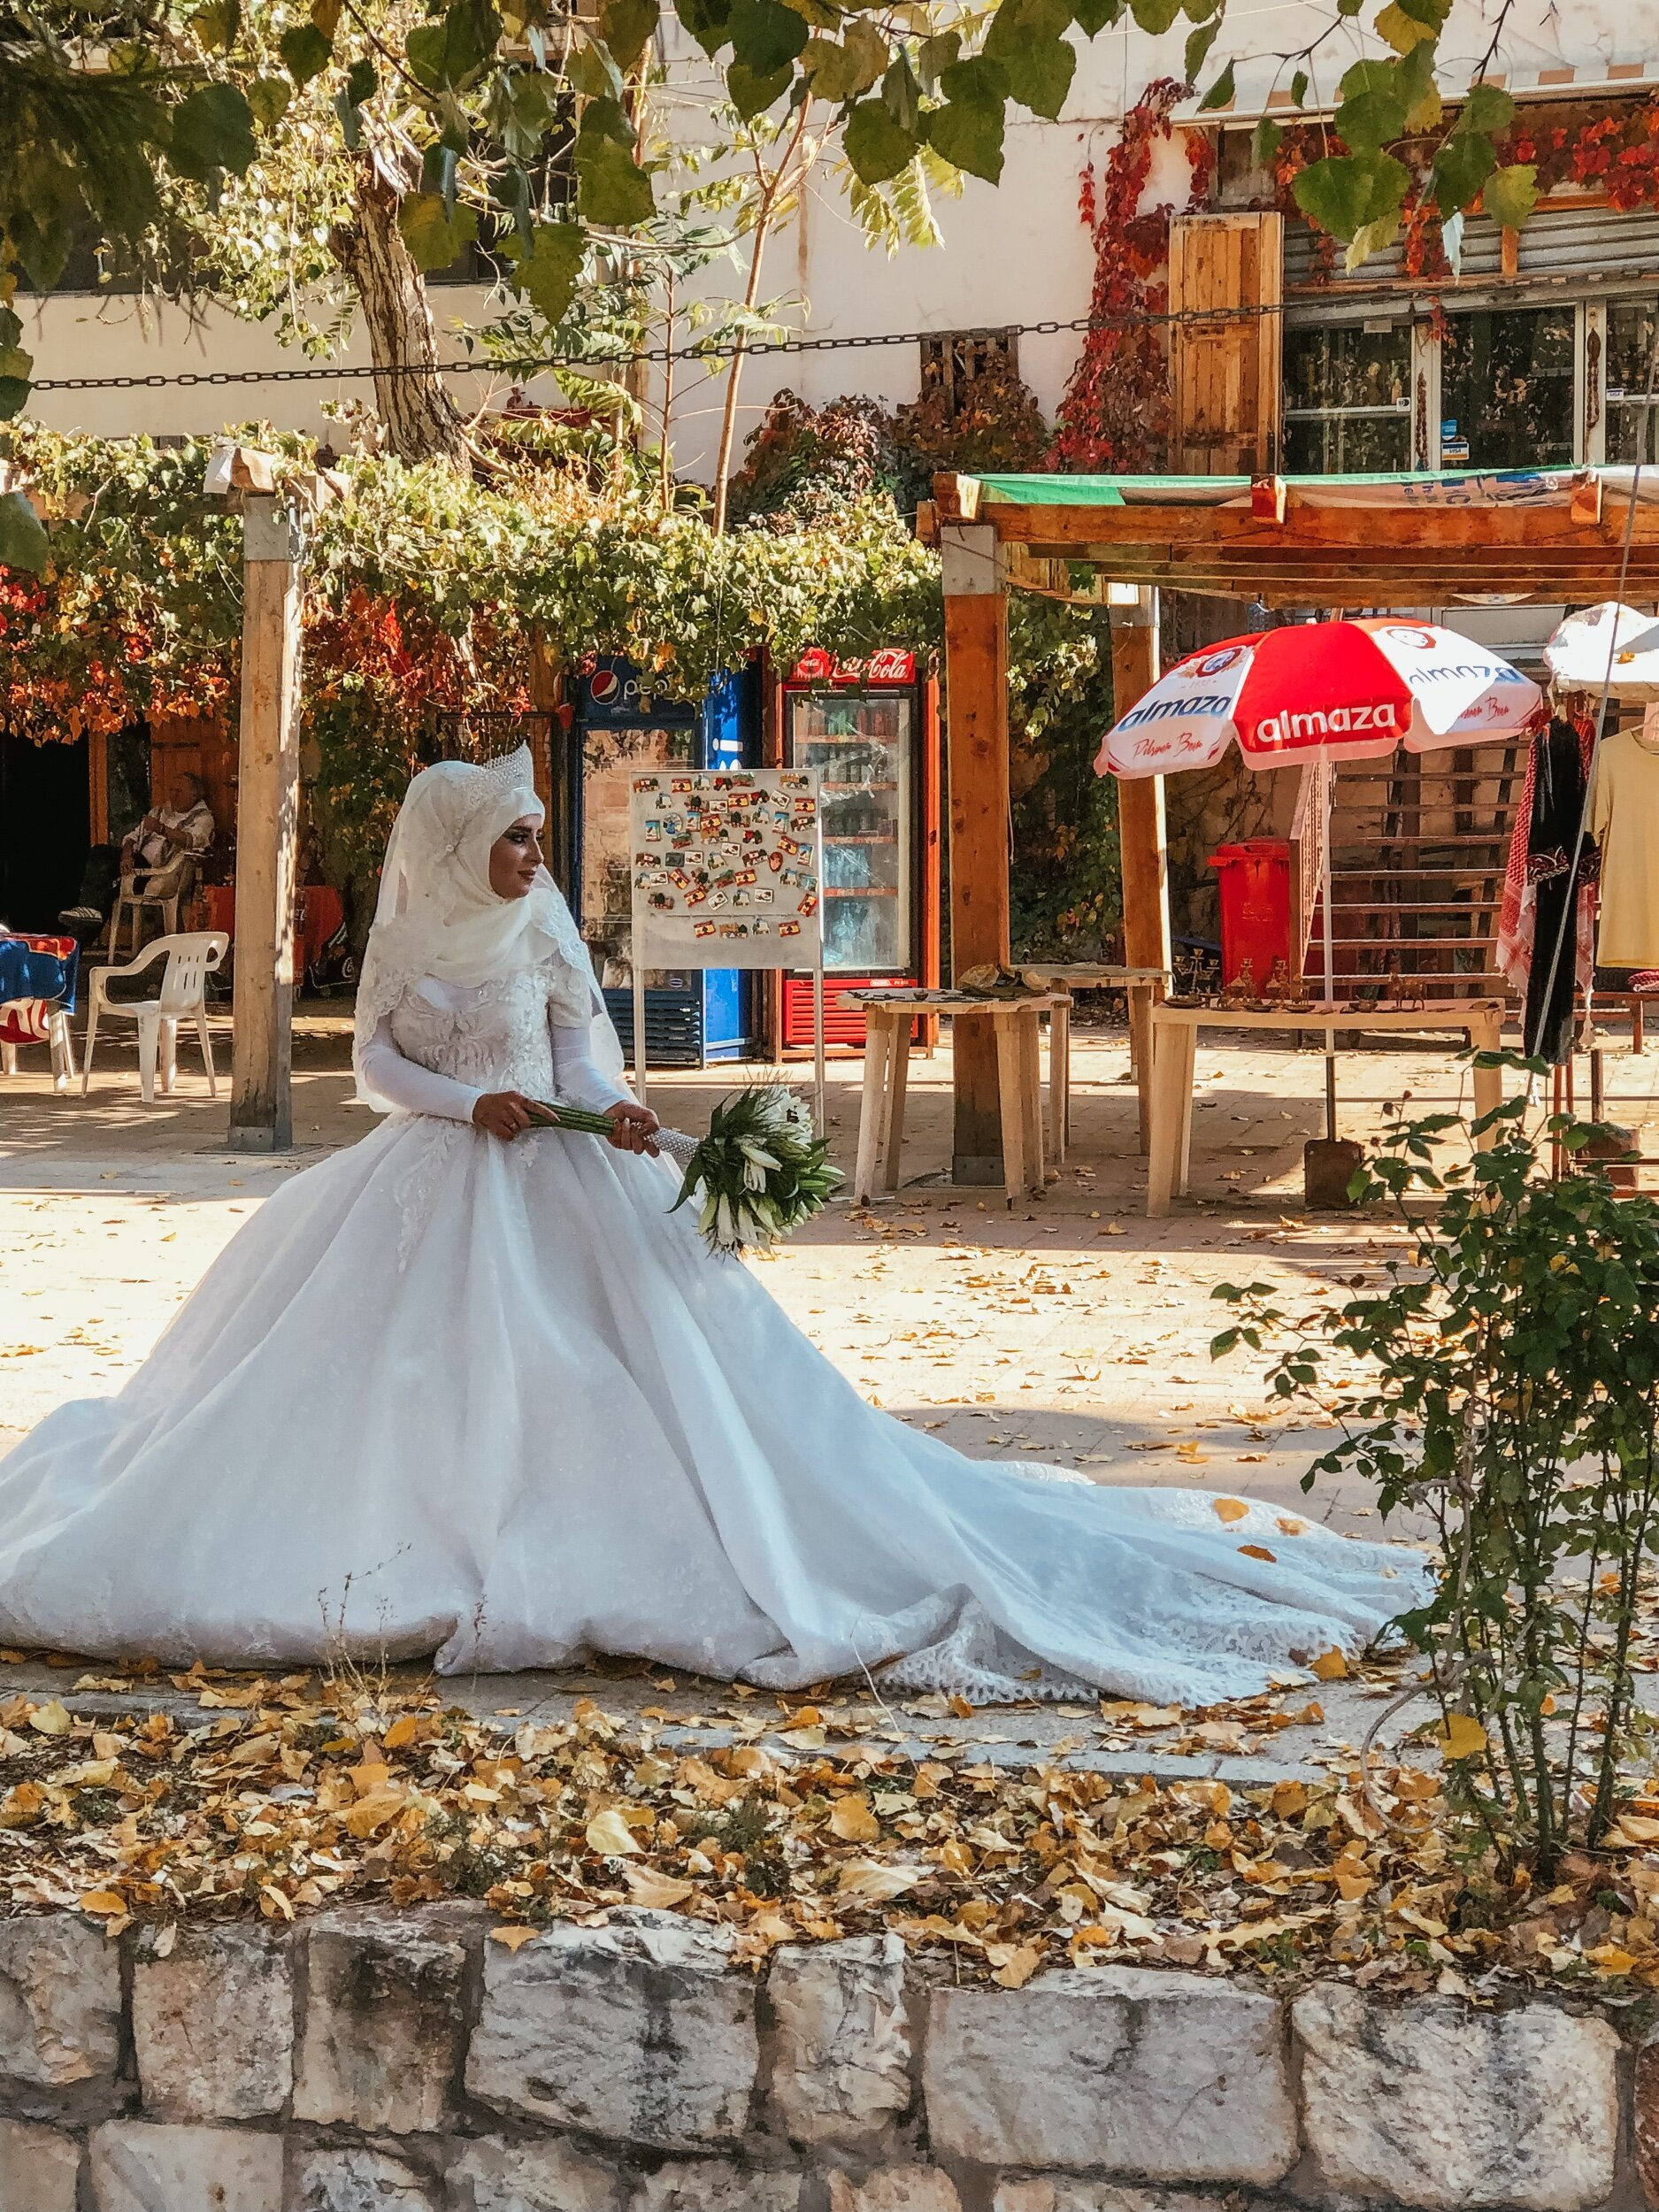 I snuck up on a wedding photoshoot in a more rural part of Lebanon, where woman tend to cover more. They're also a bit more traditional and conservative outside of Beirut.